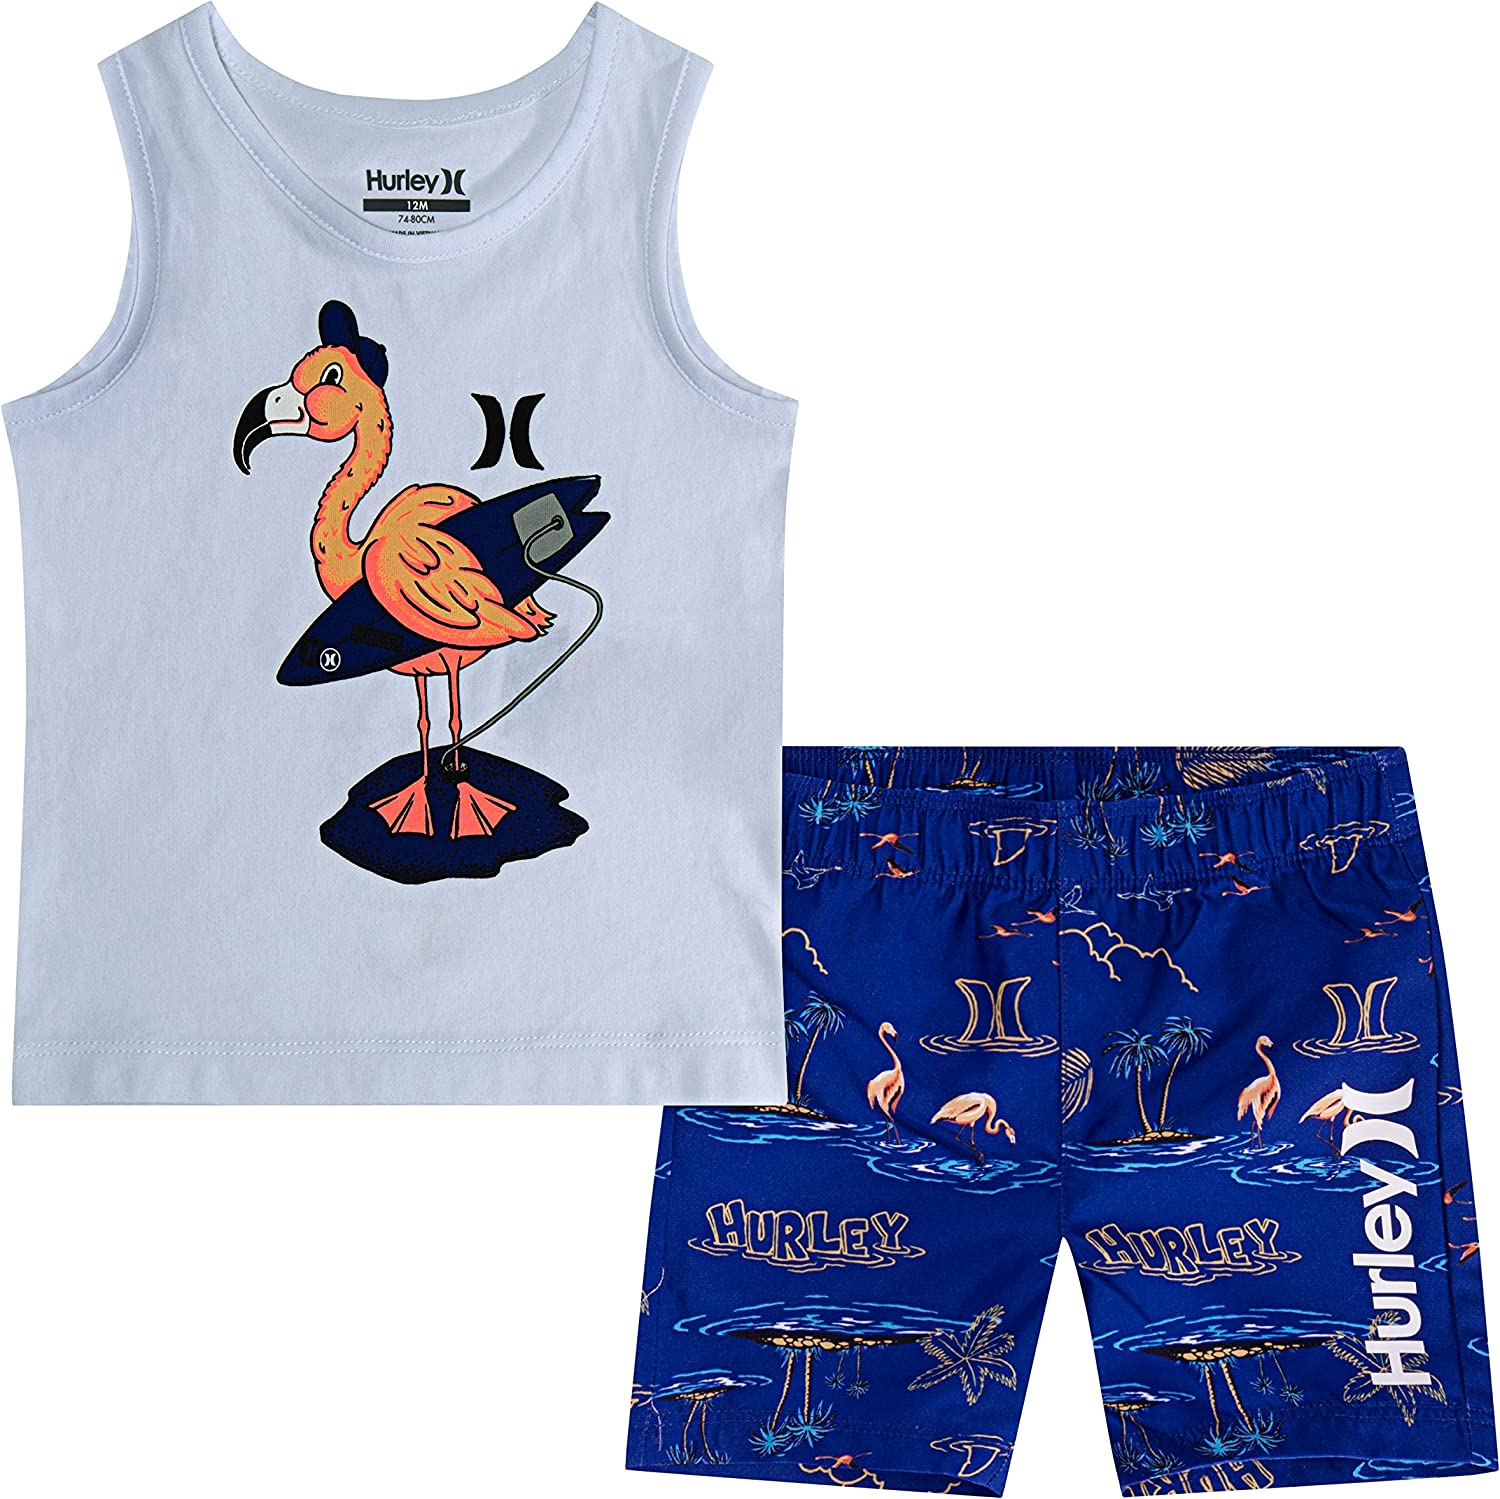 Hurley Baby Boys Tank Top and Shorts 2-Piece Outfit Set